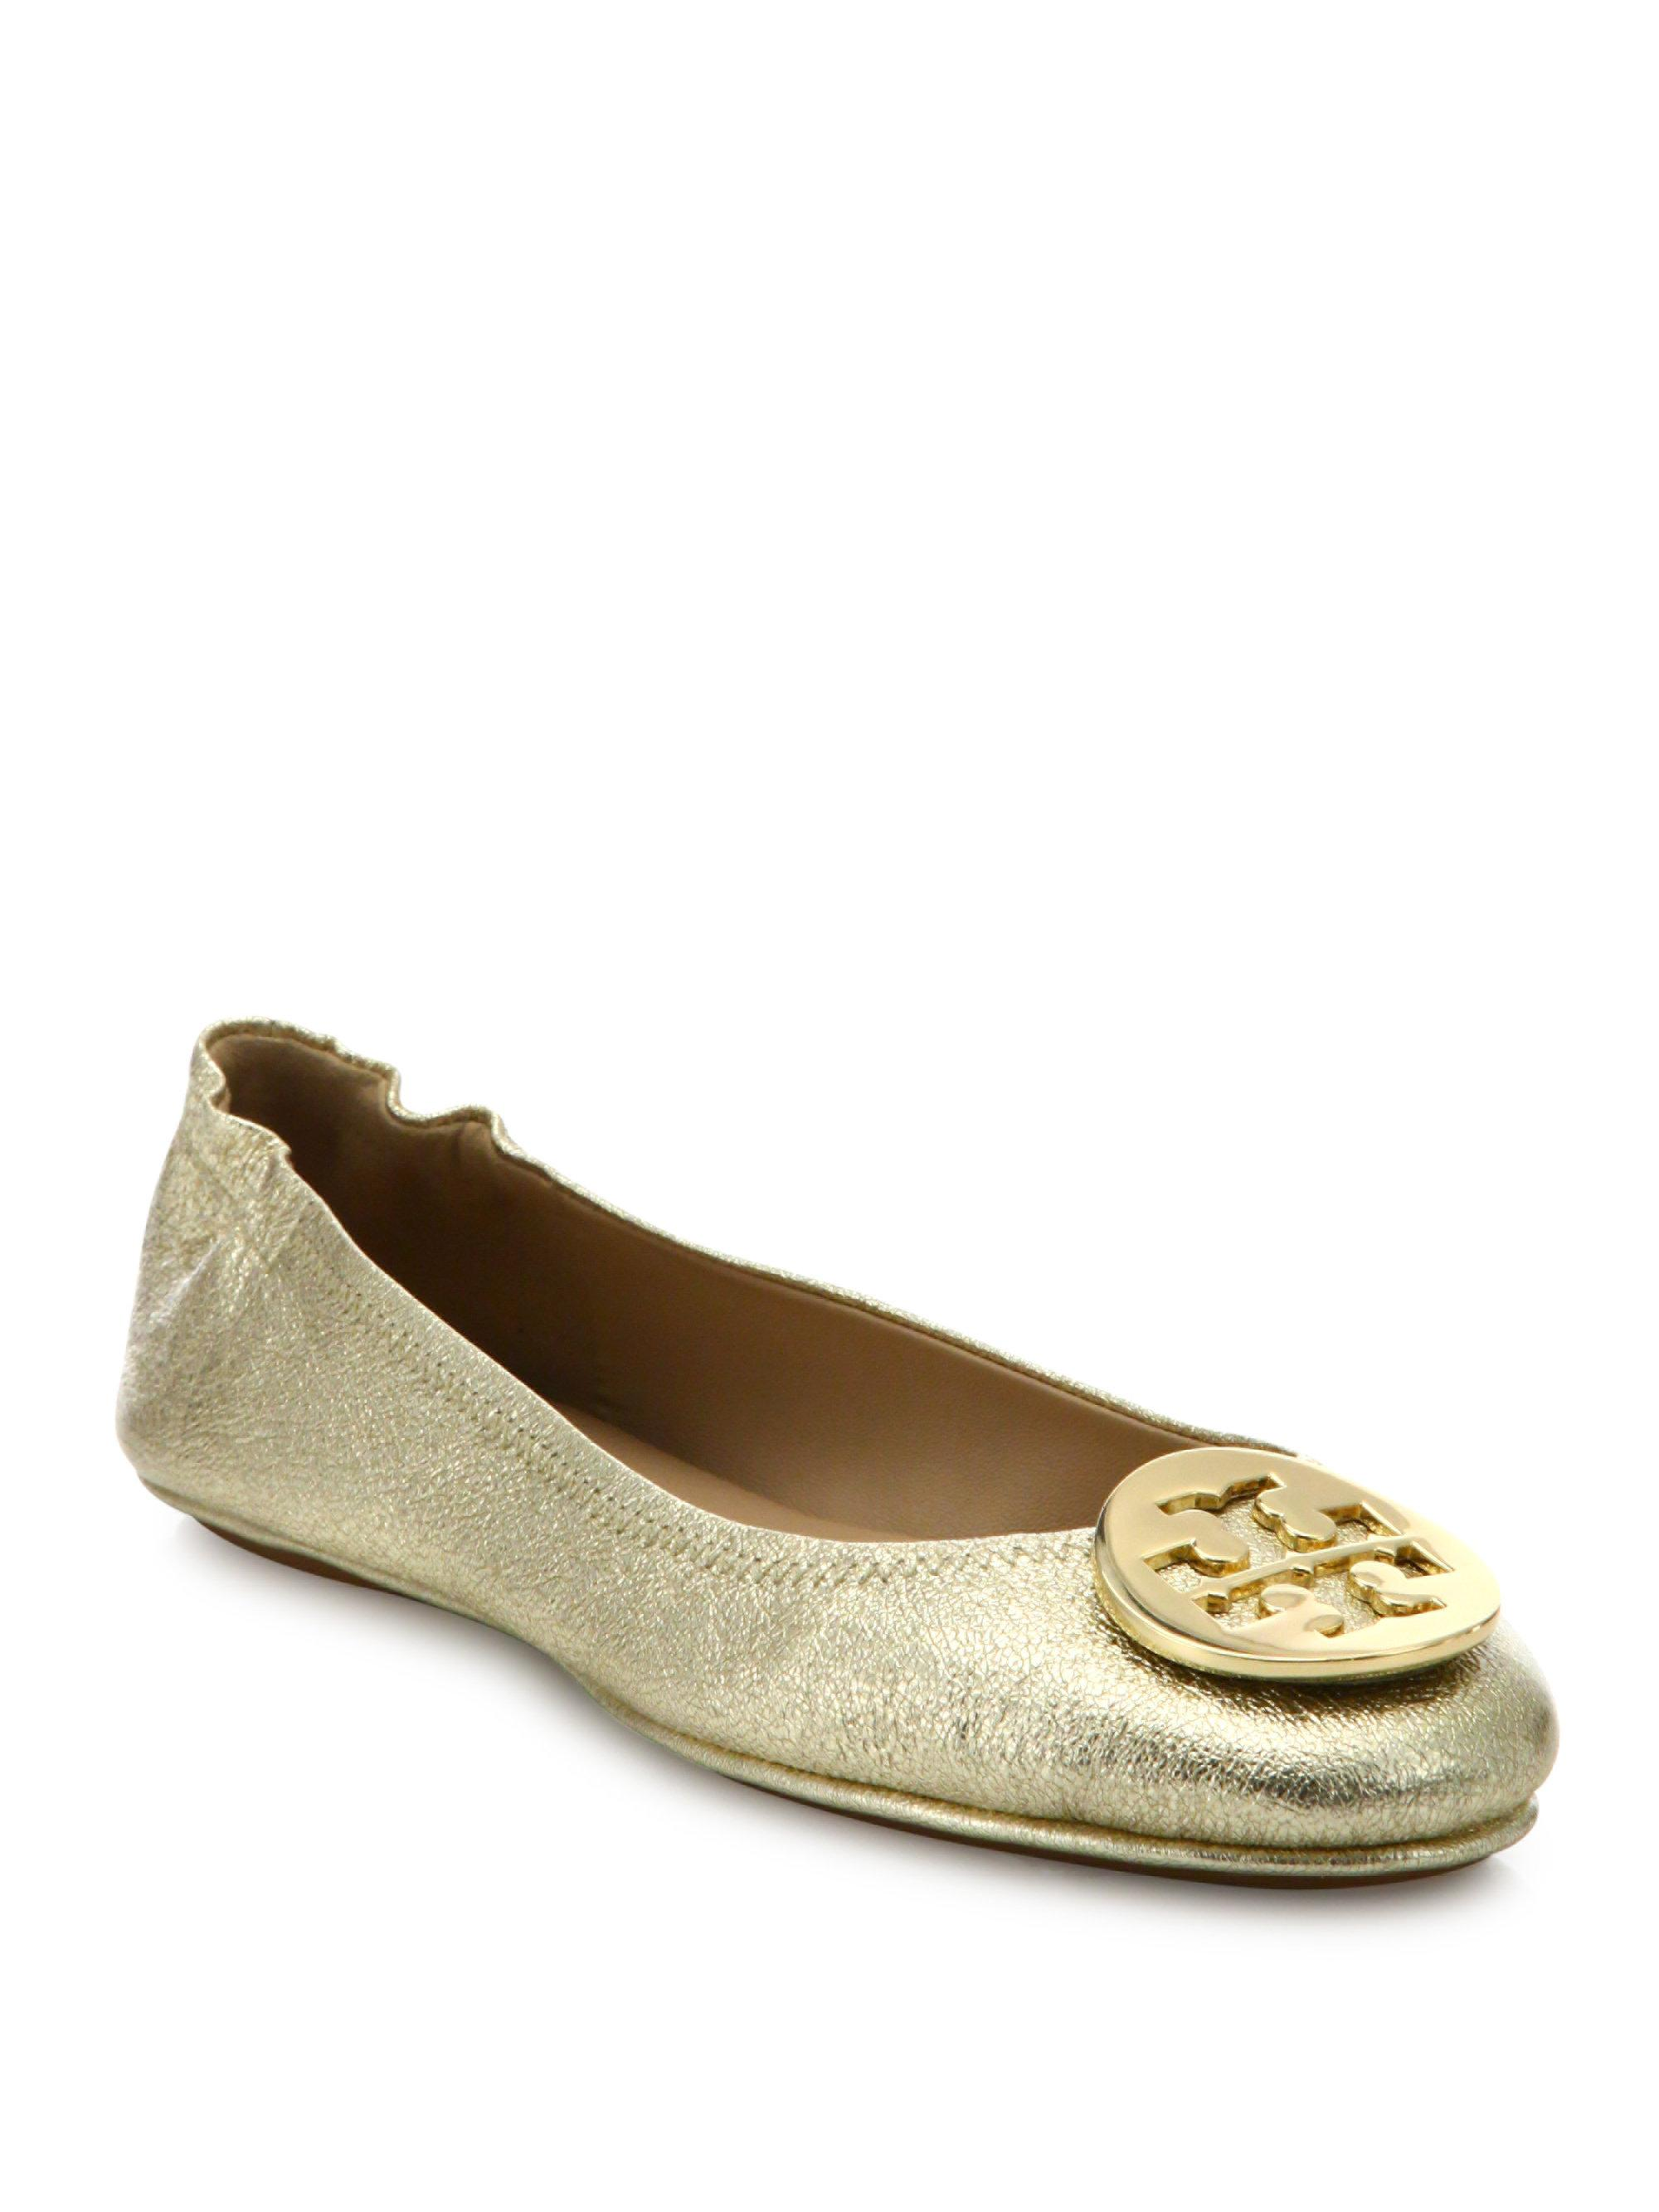 0894da7a07f0 ... inexpensive lyst tory burch minnie travel metallic leather ballet flats  in 83783 a0a4f ...